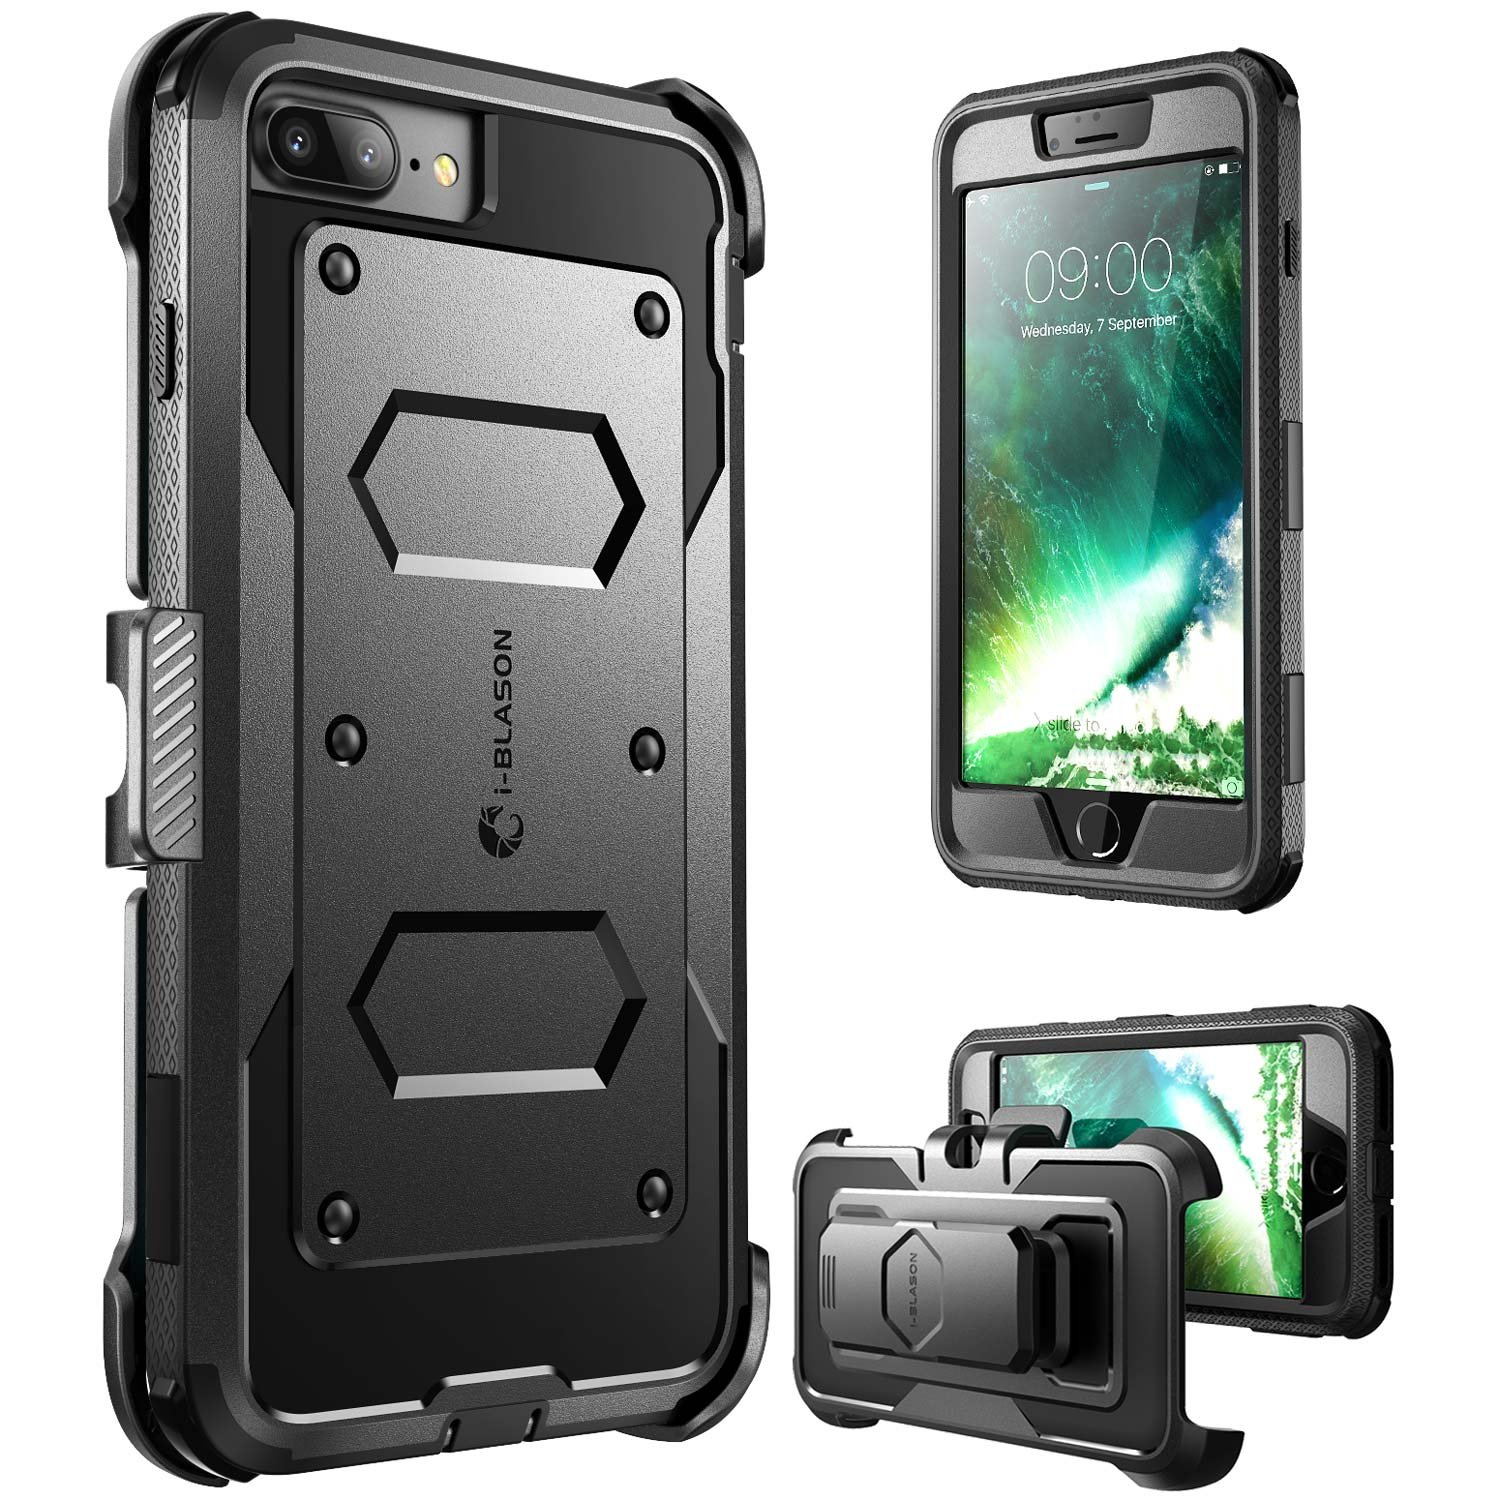 iphone 7 plus cases with screen protector